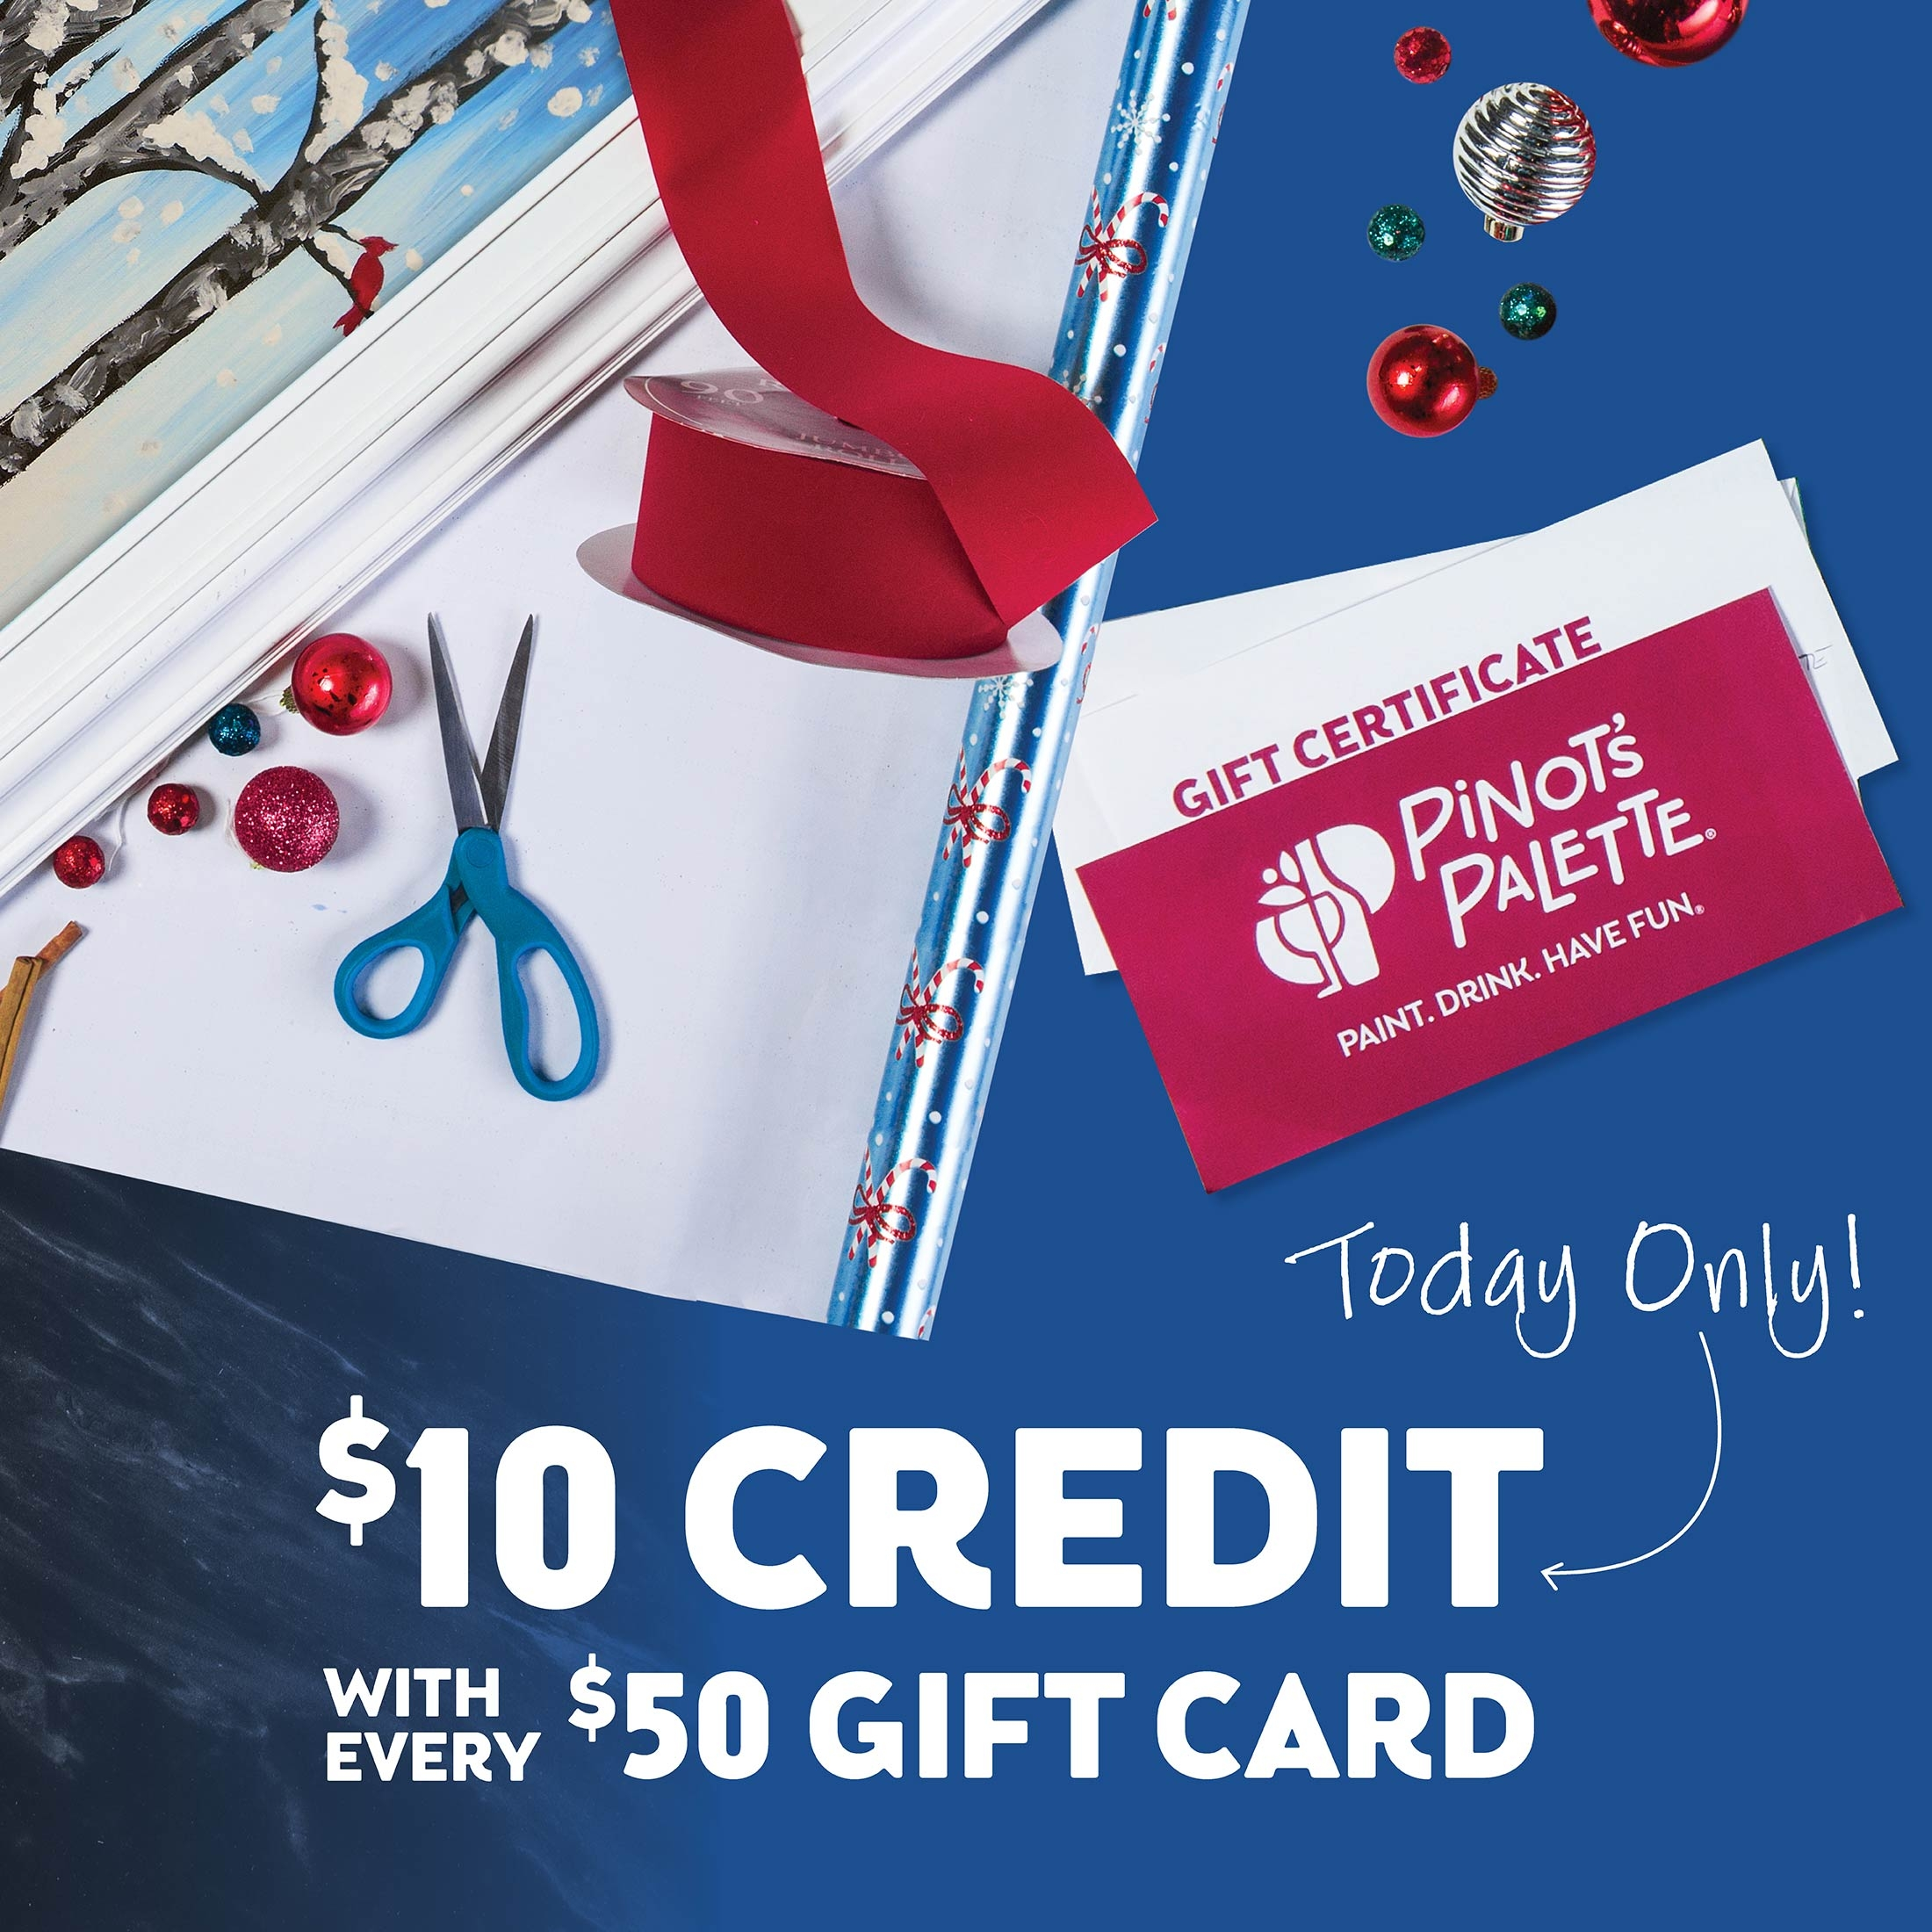 Bonus credit with every $50 Gift Certificate